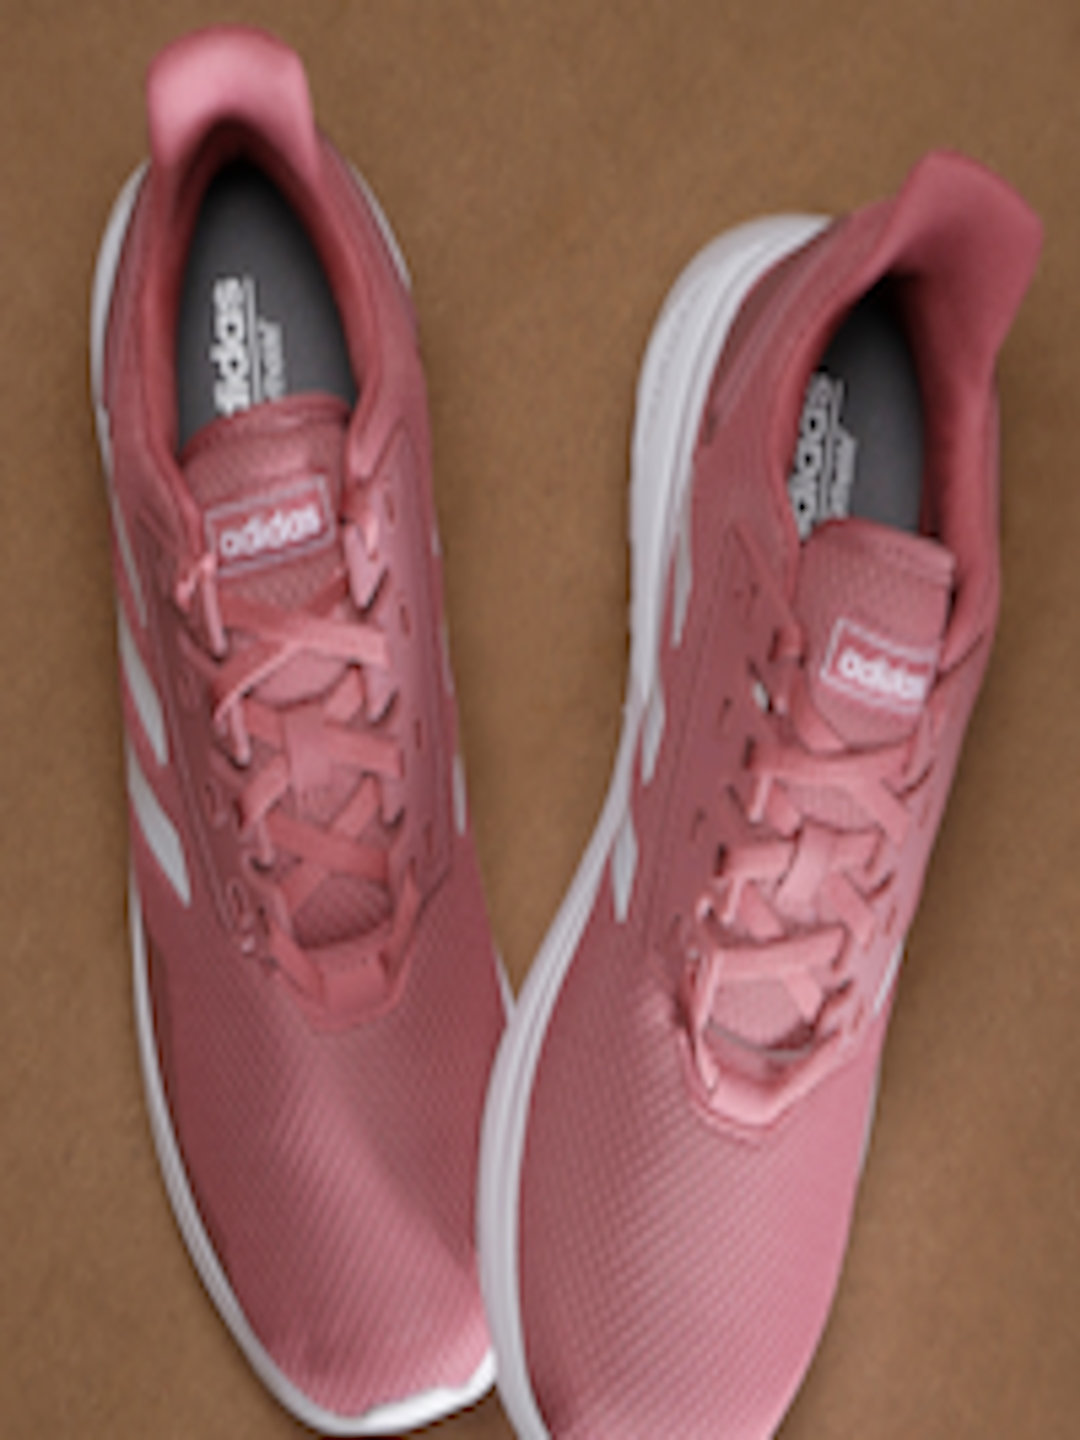 new style d45b0 2eb38 Buy ADIDAS Women Pink Solid Duramo 9 Running Shoes - Sports Shoes for Women  6841847  Myntra